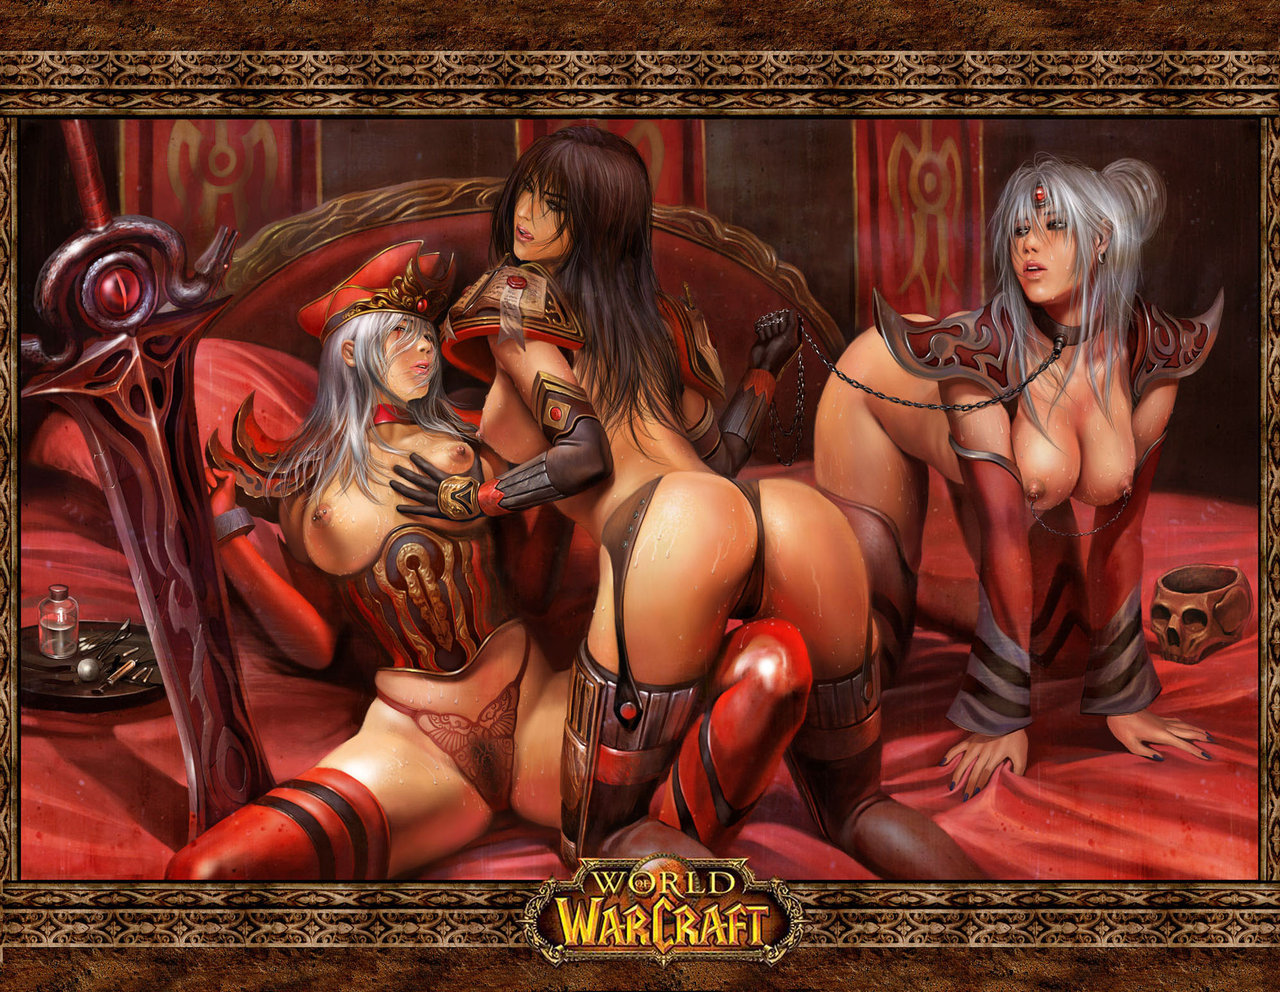 World of warcraft hentai wallpaper nude pic